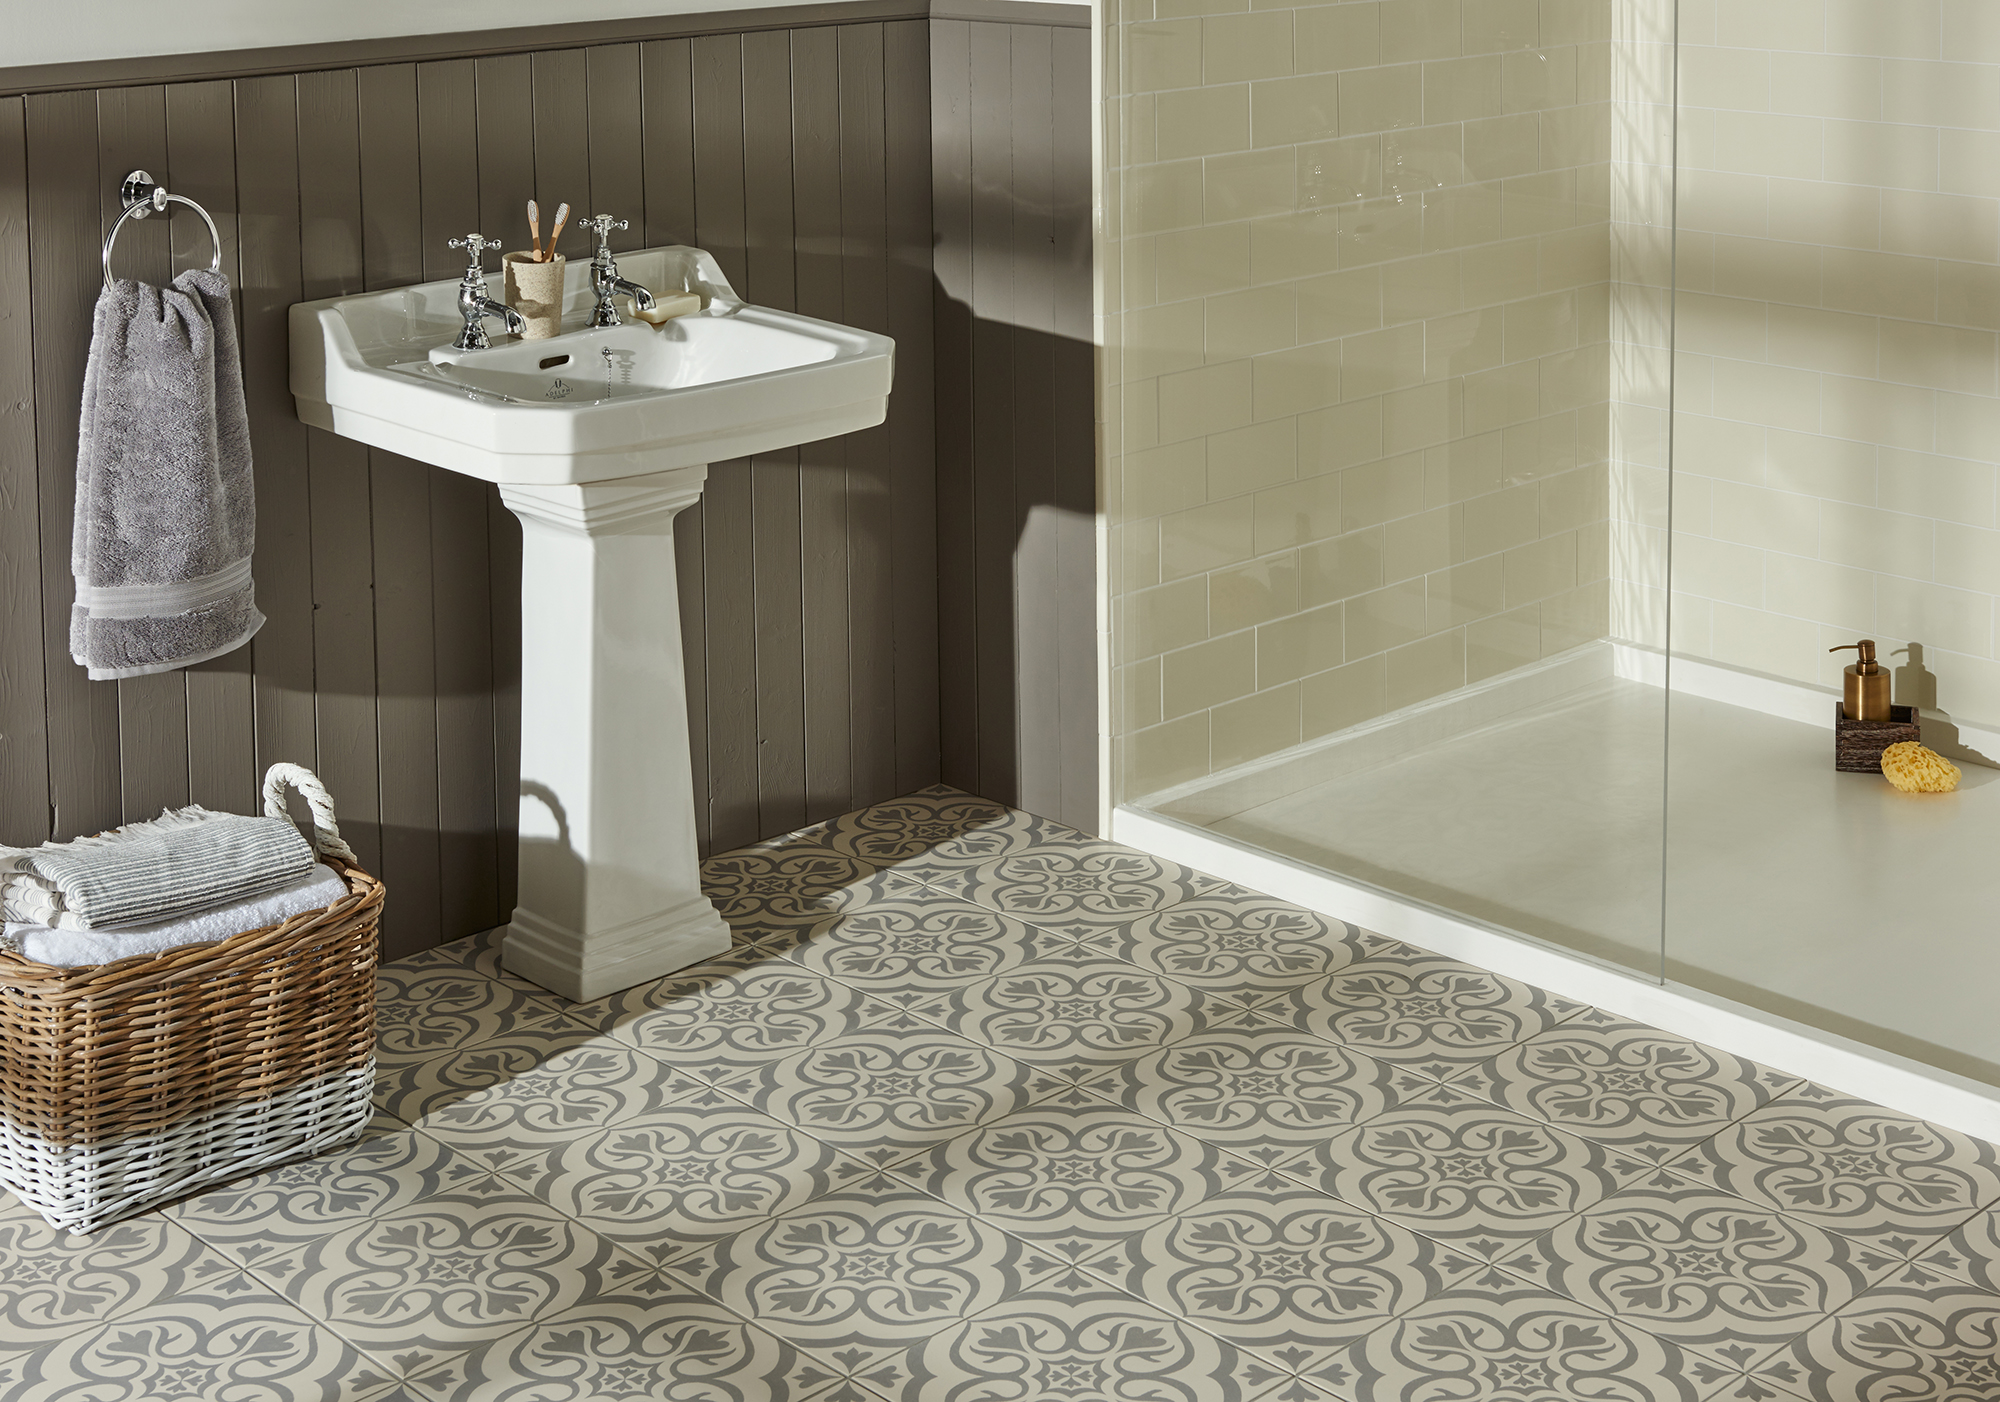 Kent tile centre showrooms tile shop in canterbury glass ceramic glass tiles dailygadgetfo Images